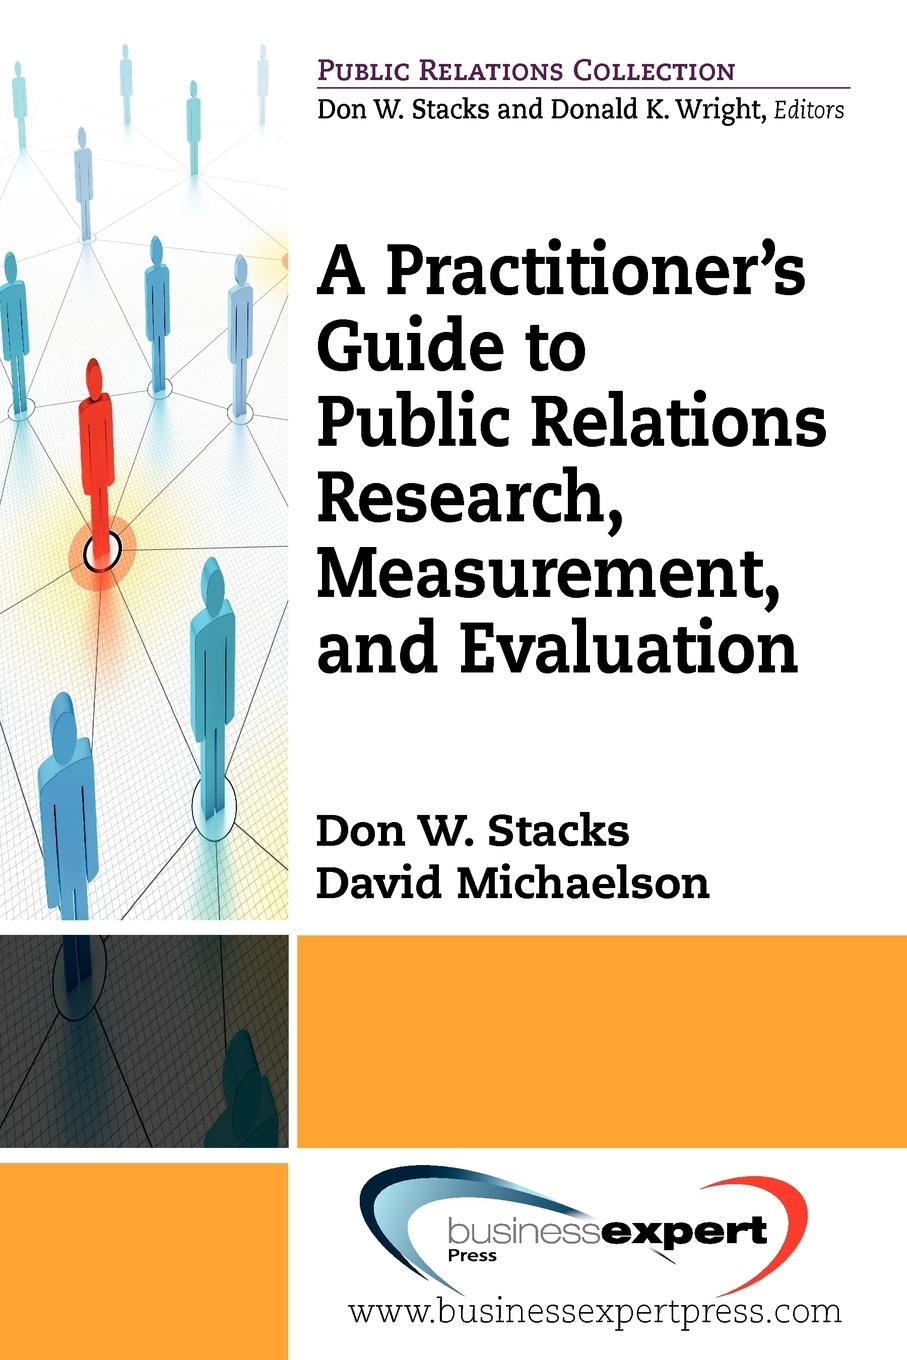 лучшая цена Don Stacks, Michaelson David, Don Stacks A Practioner's Guide to Public Relations Research, Measurement and Evaluation